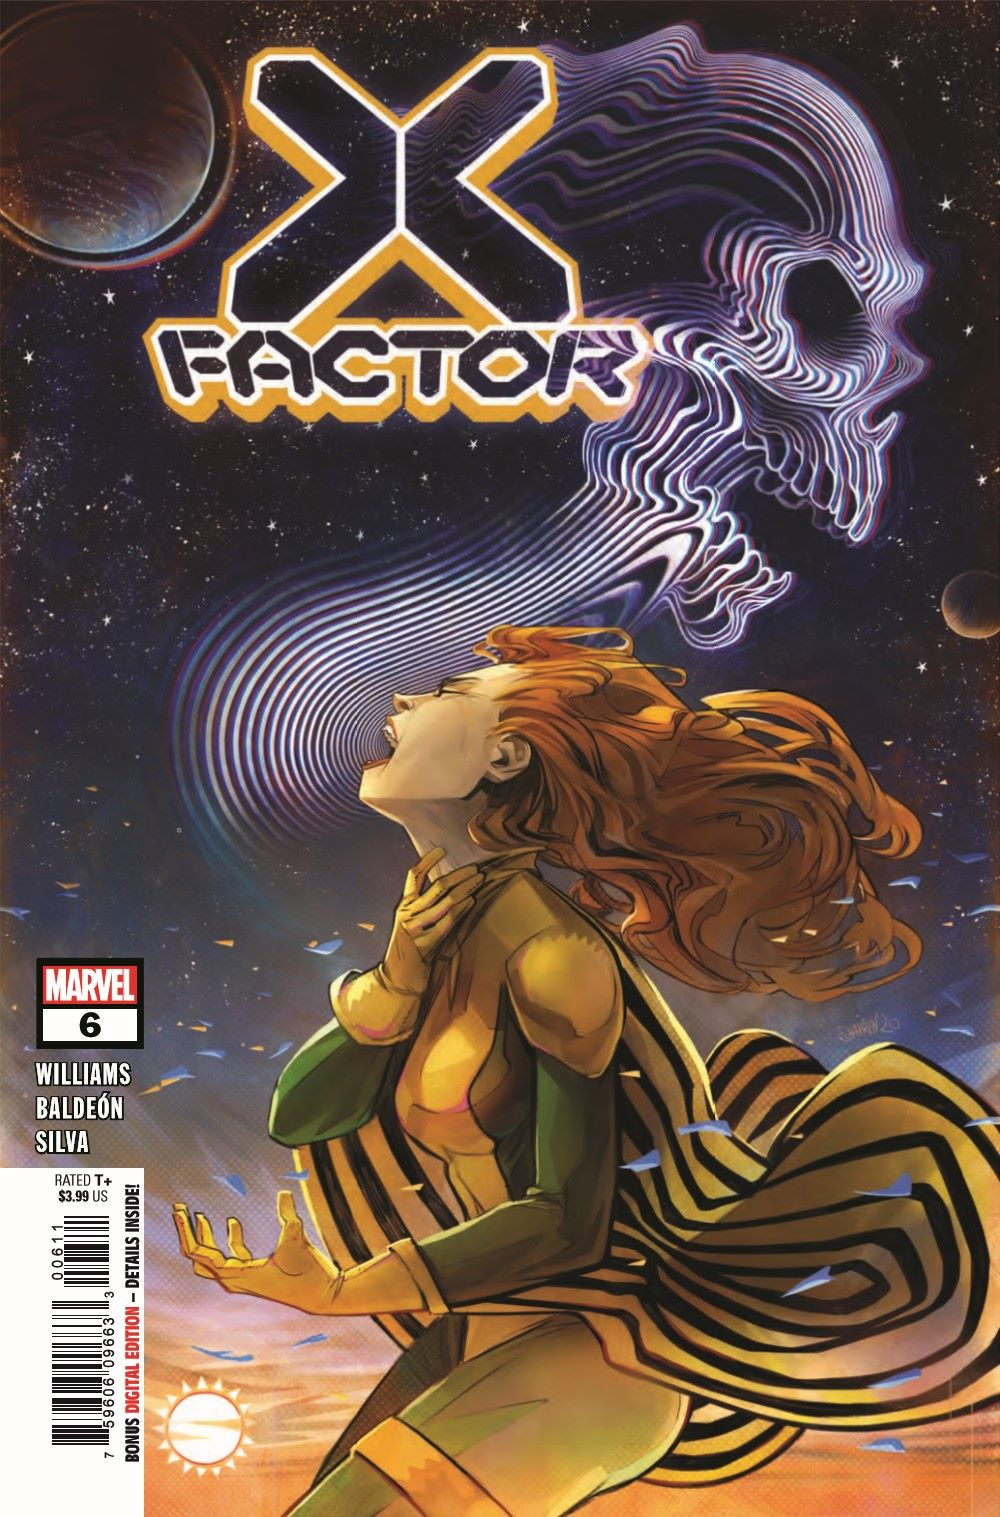 XFACT2020006_Preview-1 ComicList Previews: X-FACTOR #6